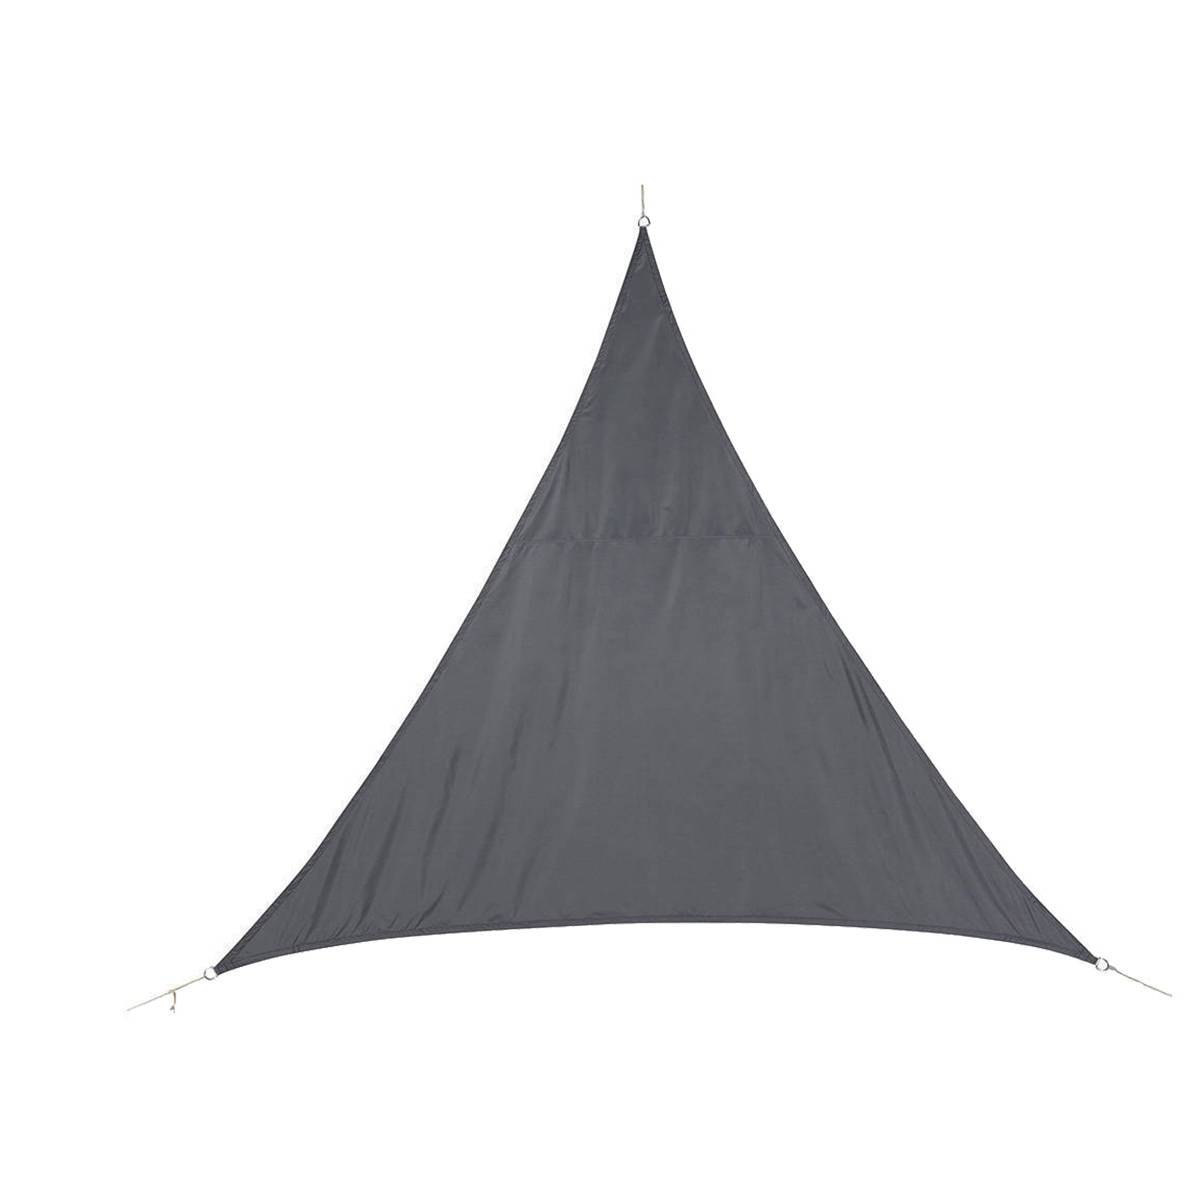 Hespéride Voile d'ombrage triangulaire Curacao Gris Jardin 4 x 4 x 4 m - Polyester